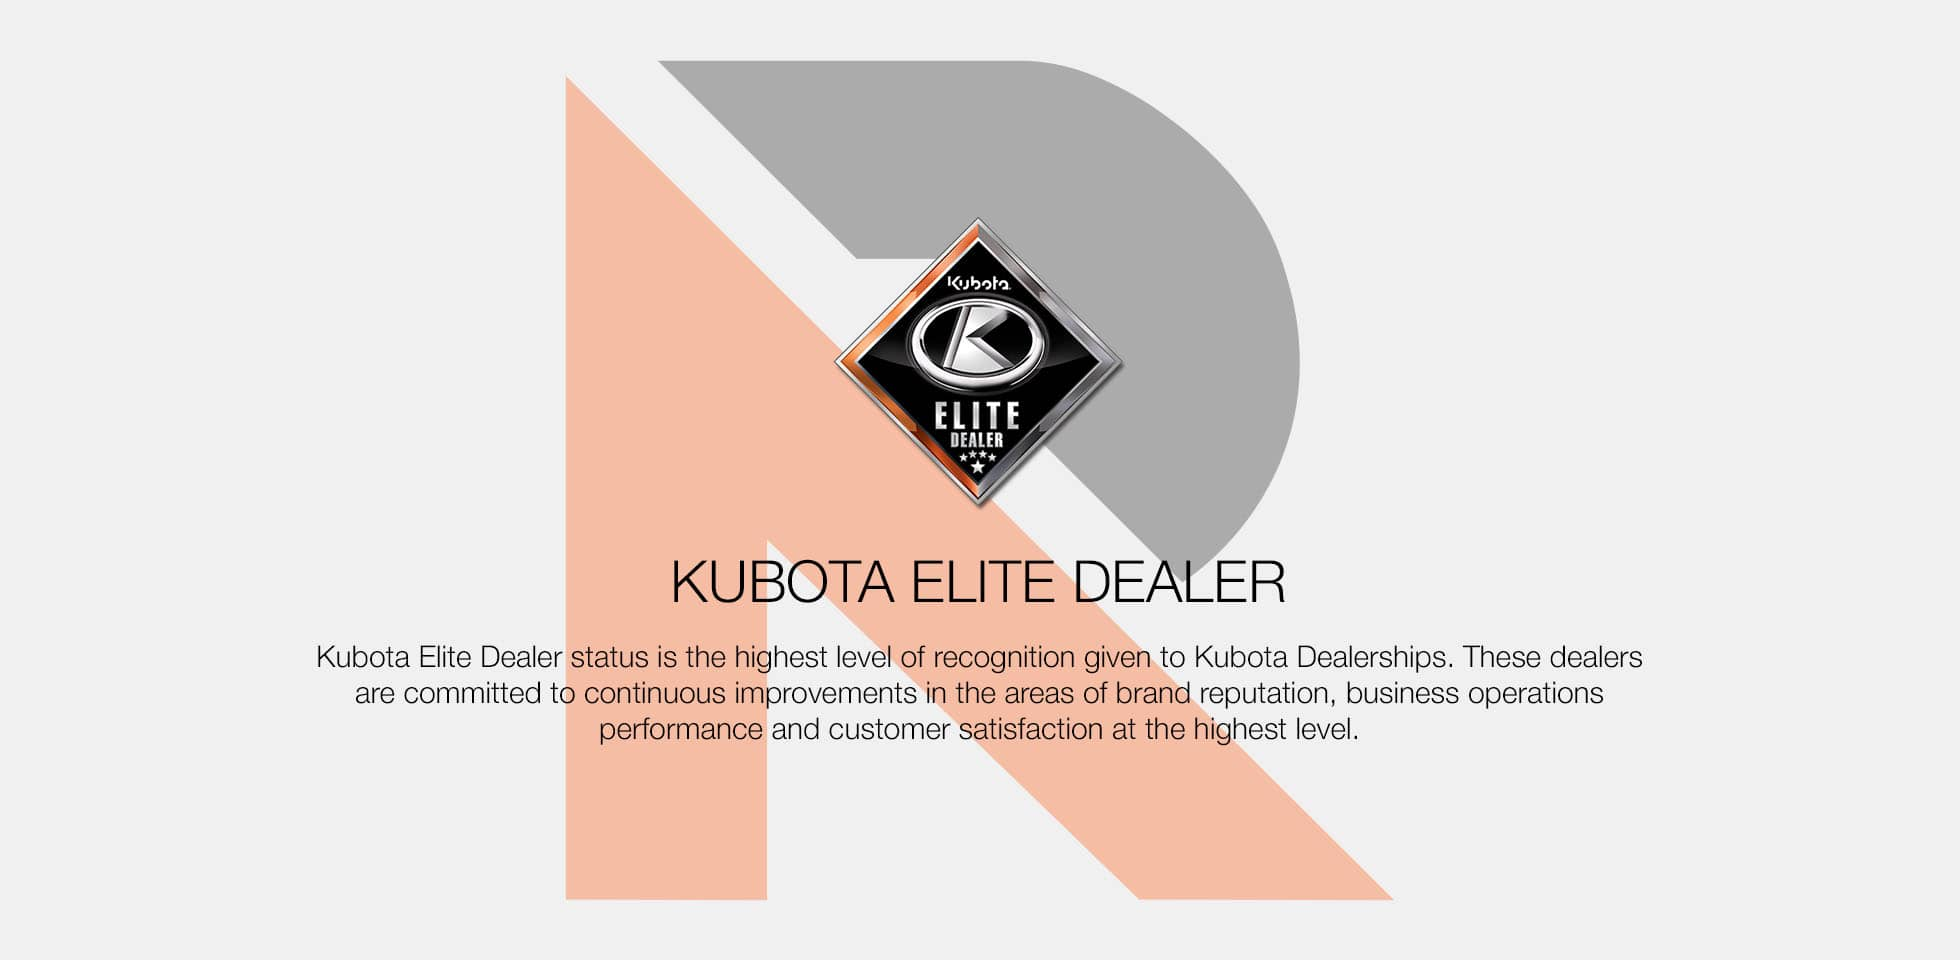 Kubota Elite Dealer status is the highest level of recognition given to kubota Dealerships. These dealers are committed to continous improvements in the areas of brand reputation, business operations performance and customer satisfaction at the highest level.